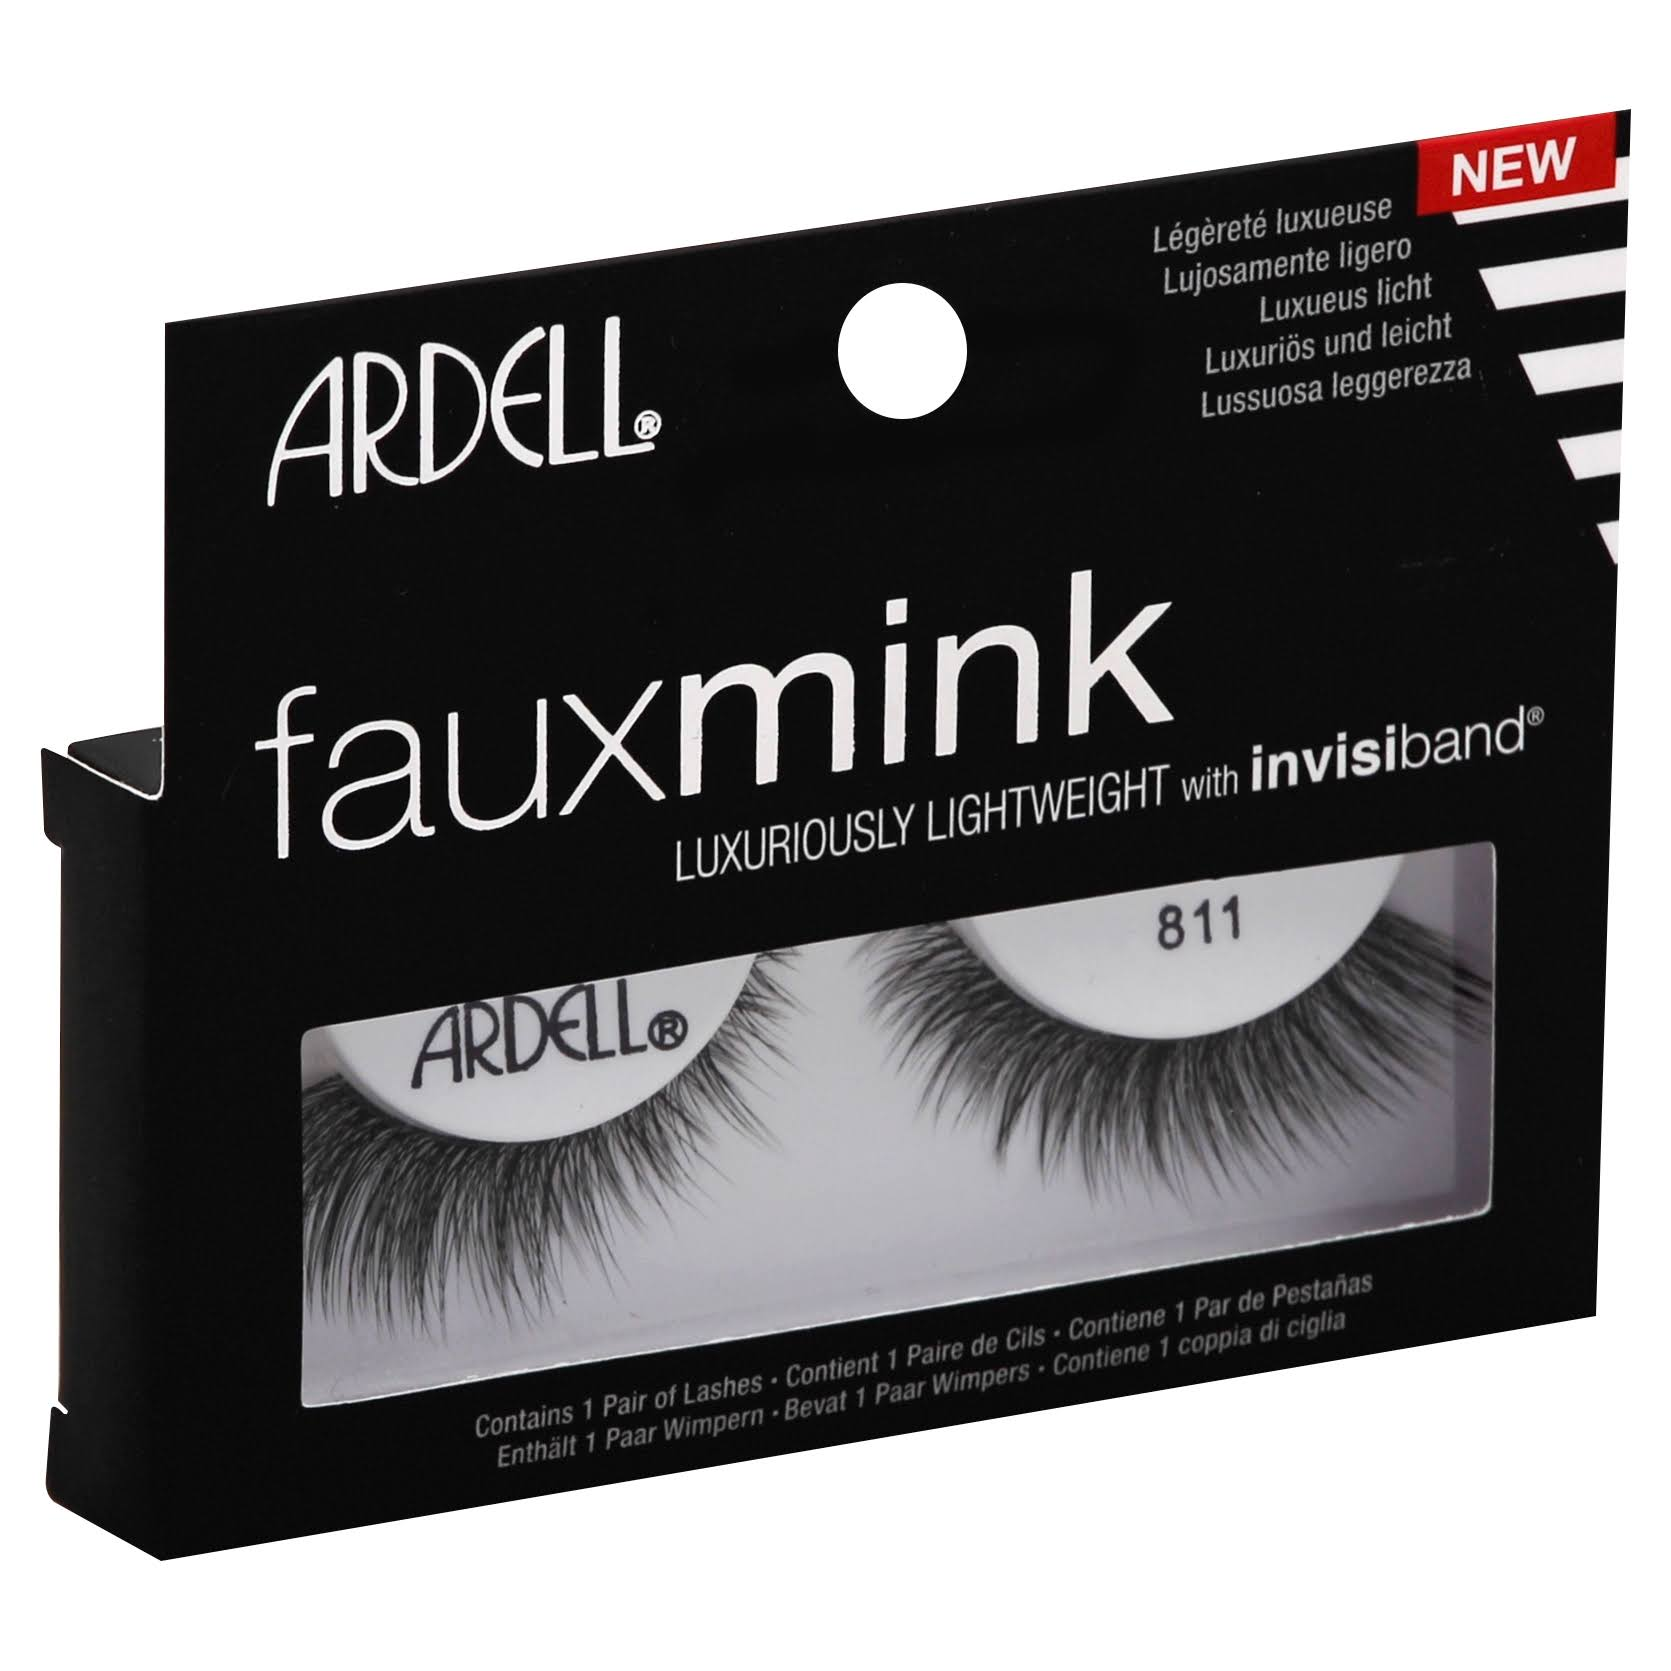 Ardell Lashes, Fauxmink, 811